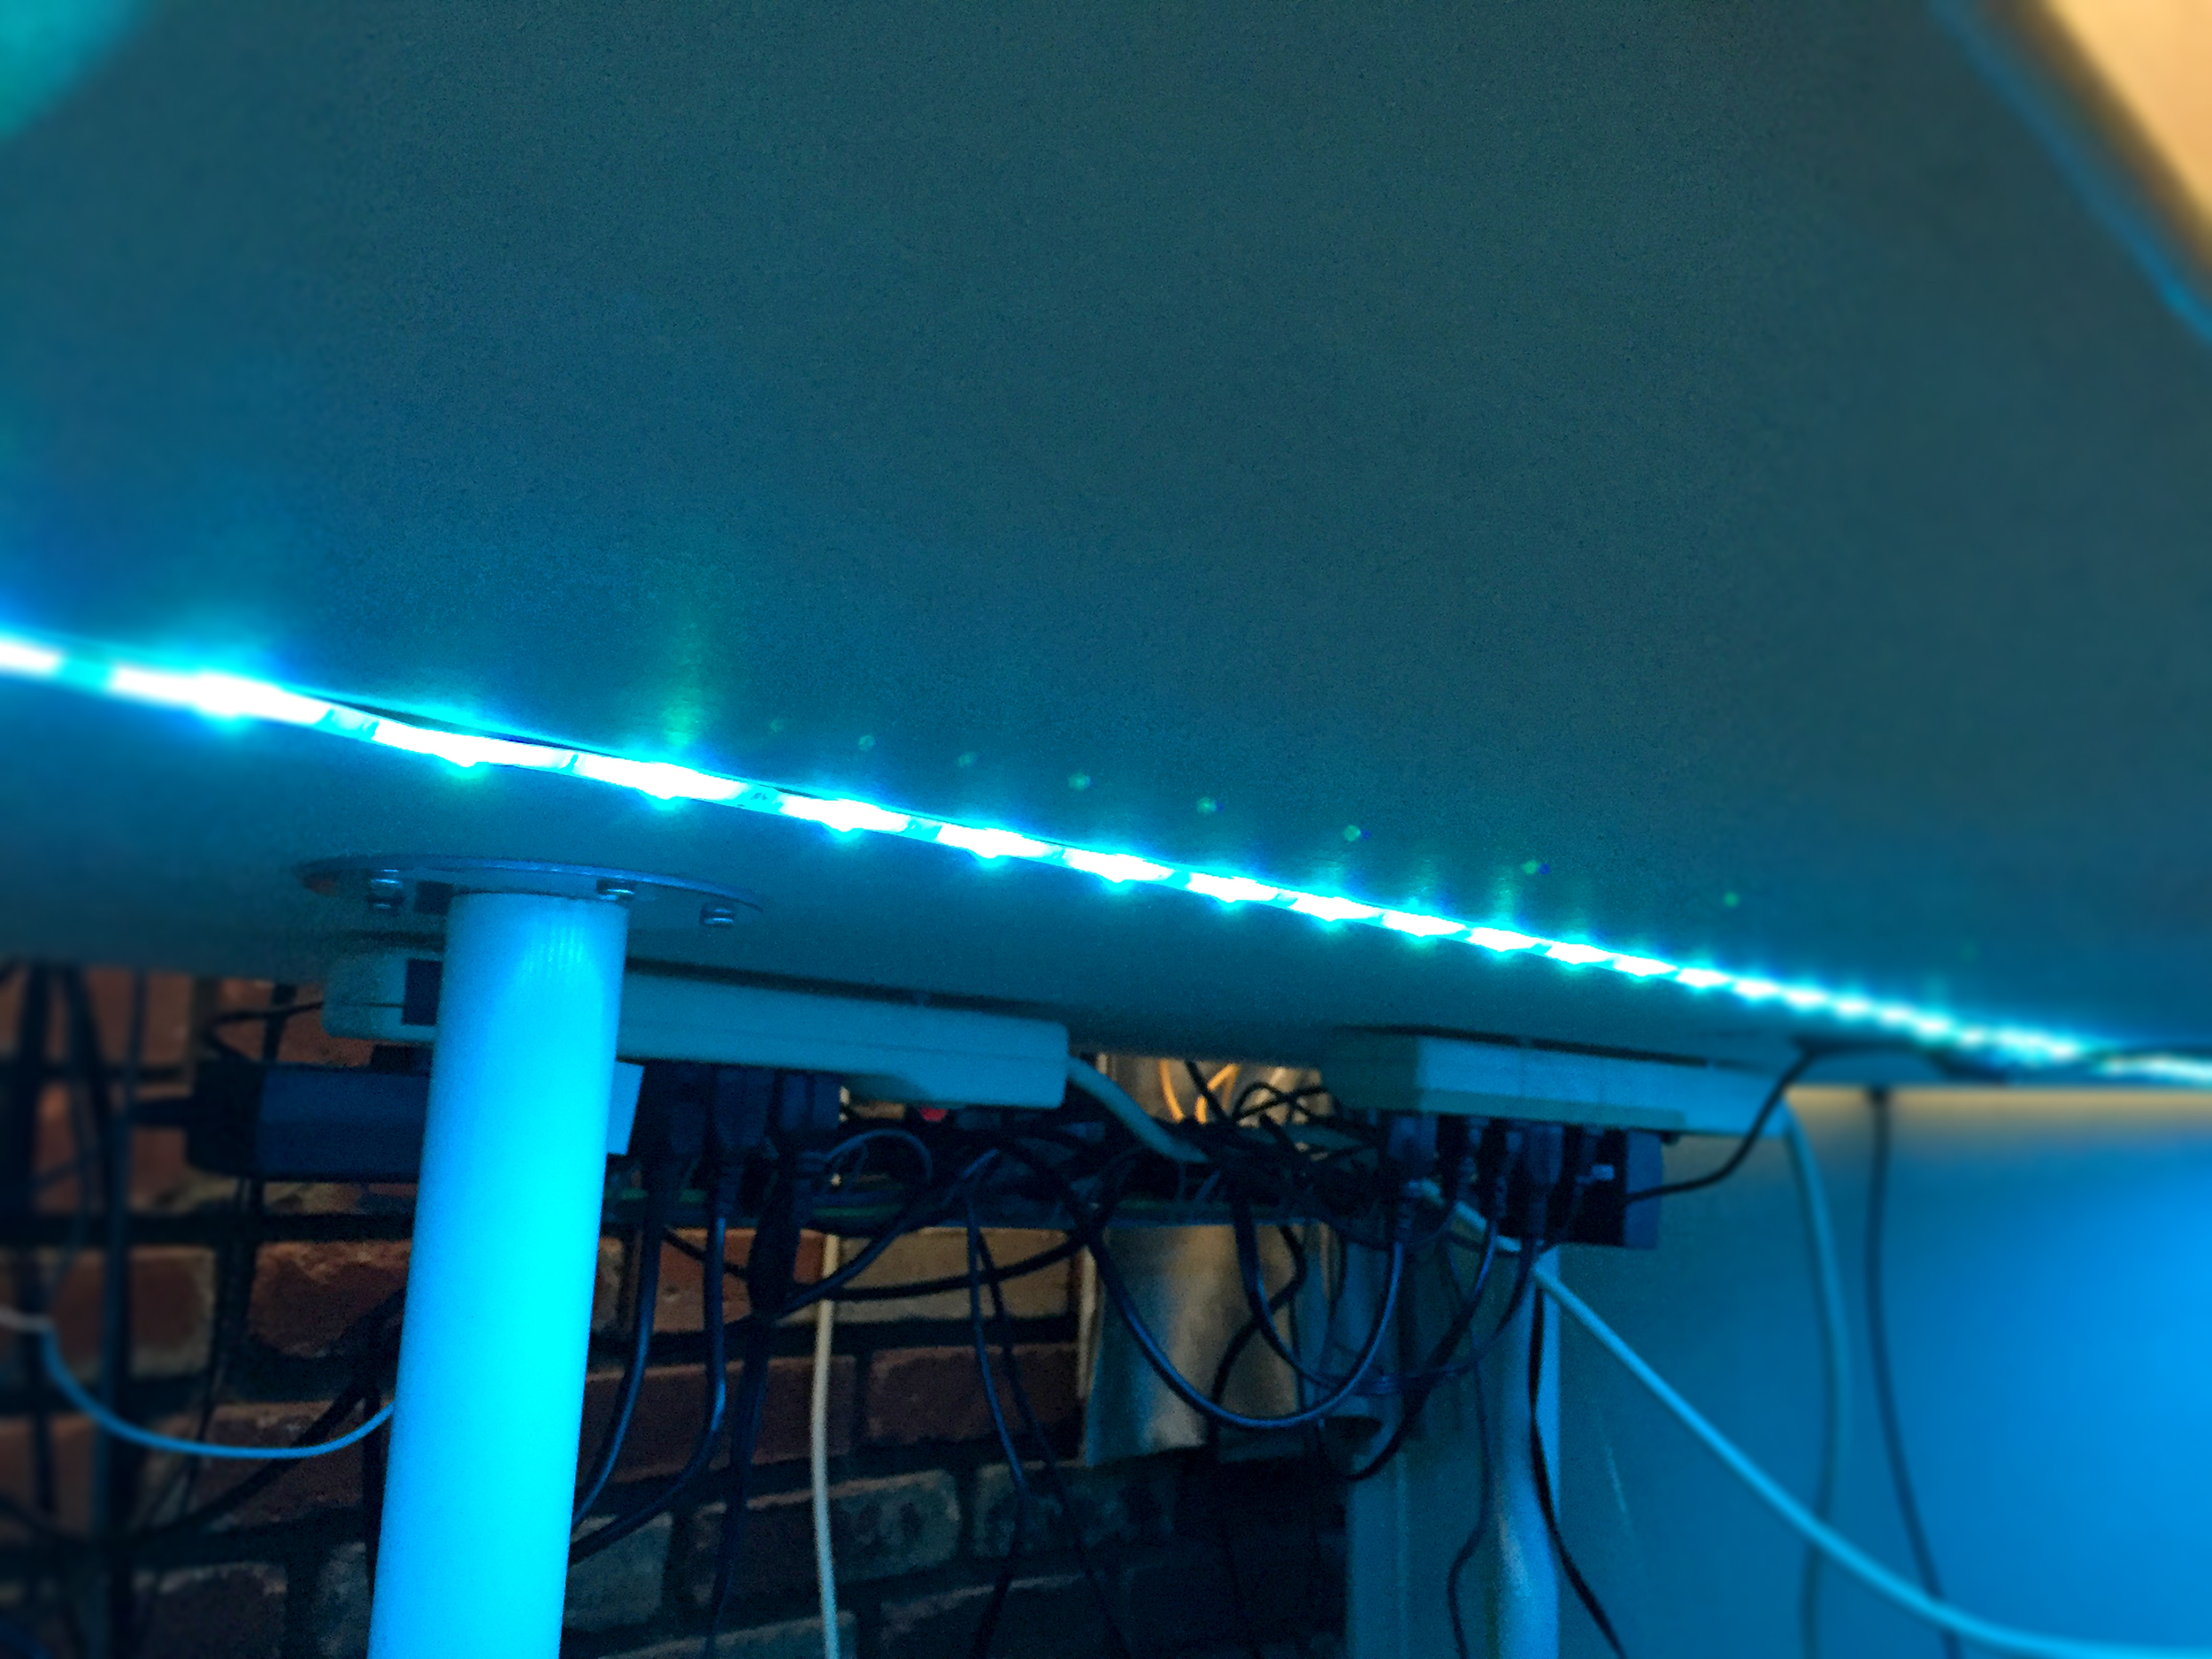 Closer look at the lights and cable management baskets